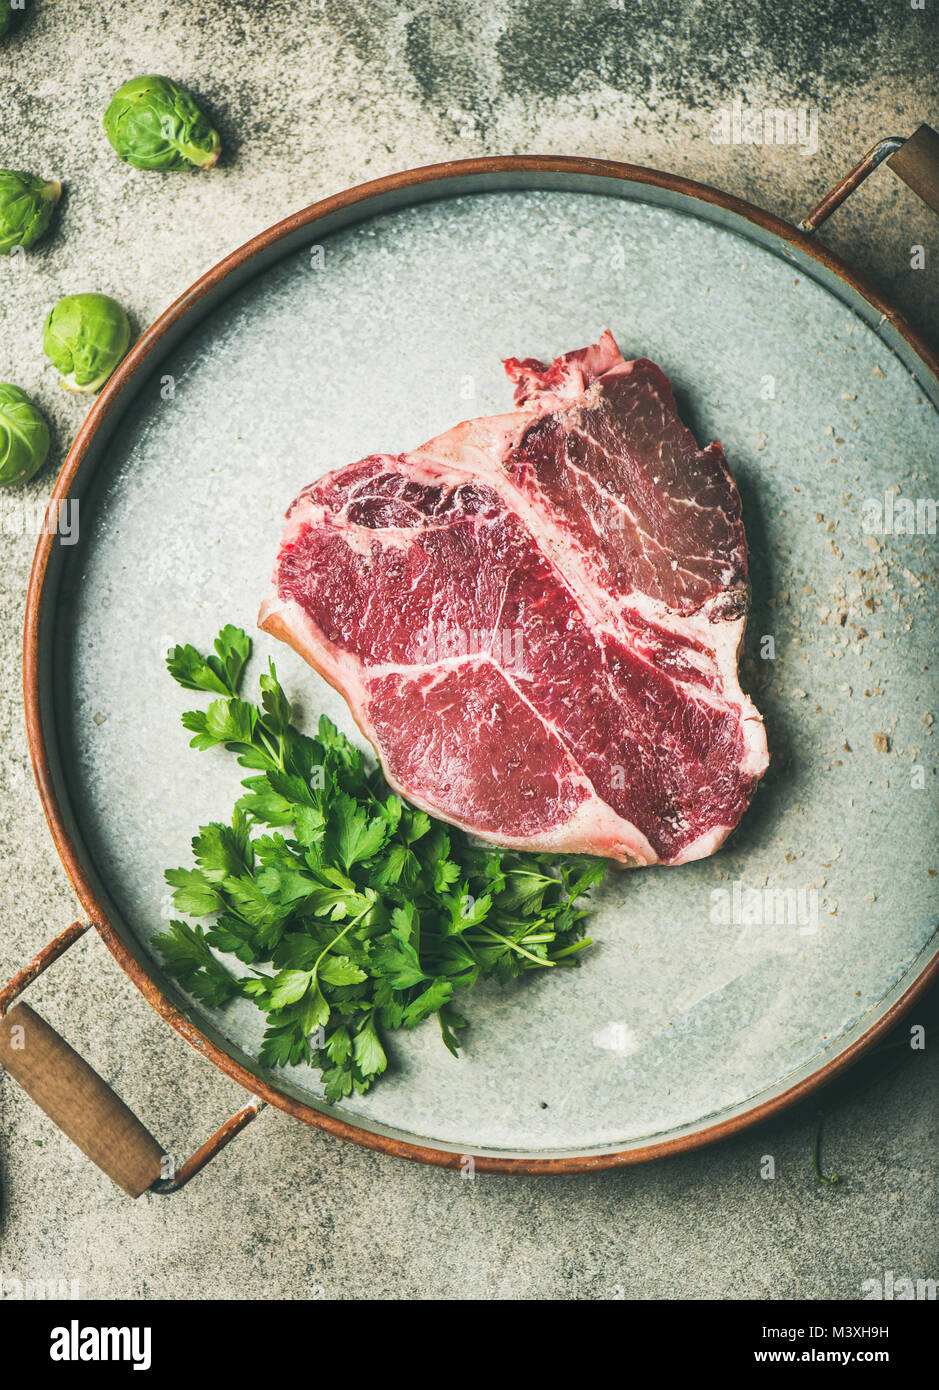 Flat-lay of raw uncooked dry-aged t-bone prime beef steak - Stock Image